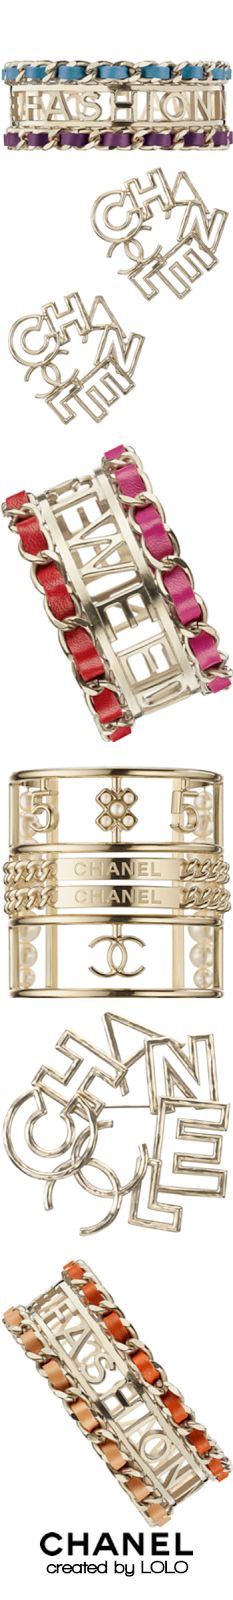 Chanel Spring-Summer 2015 Accessories   LOLO